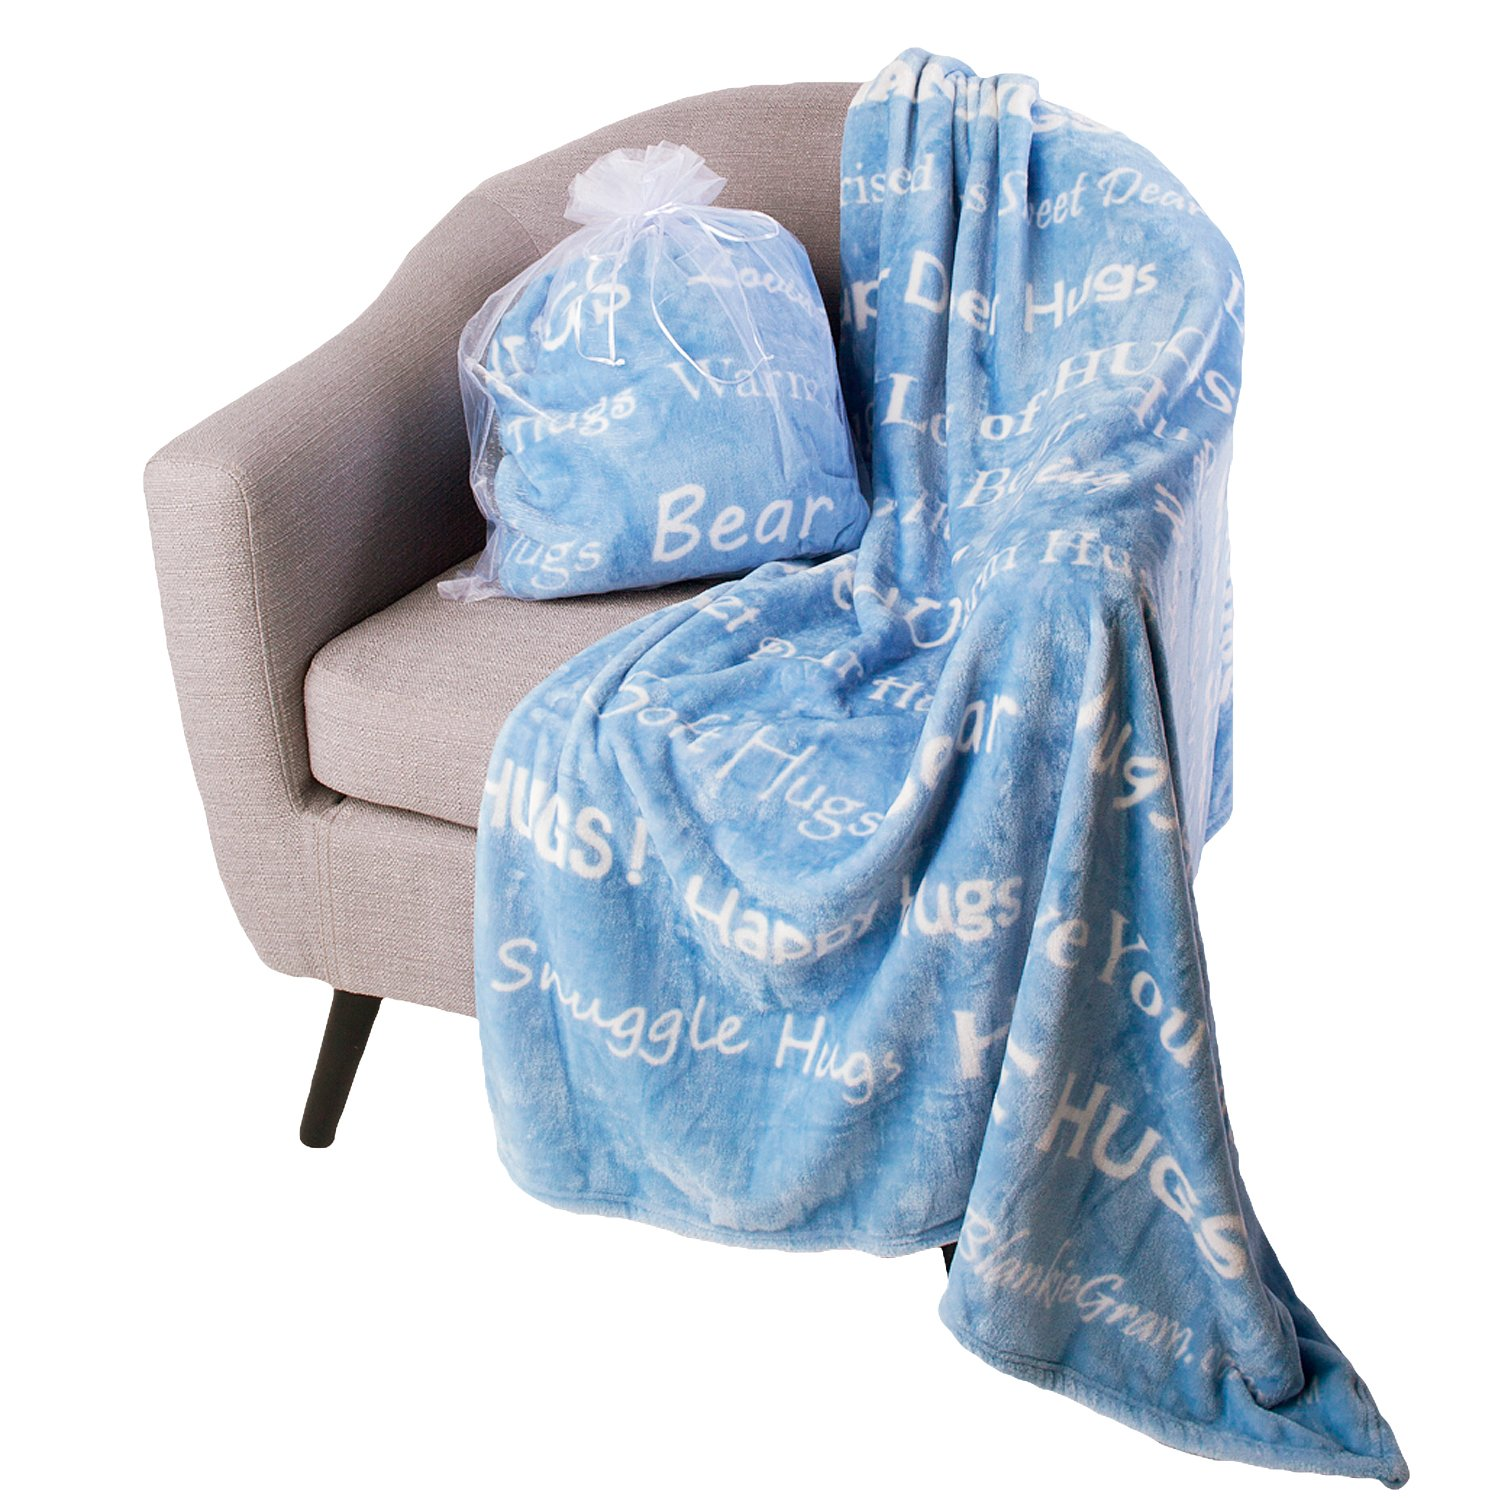 Blankiegram Hugs Blanket The Perfect Caring Gift (Blue)